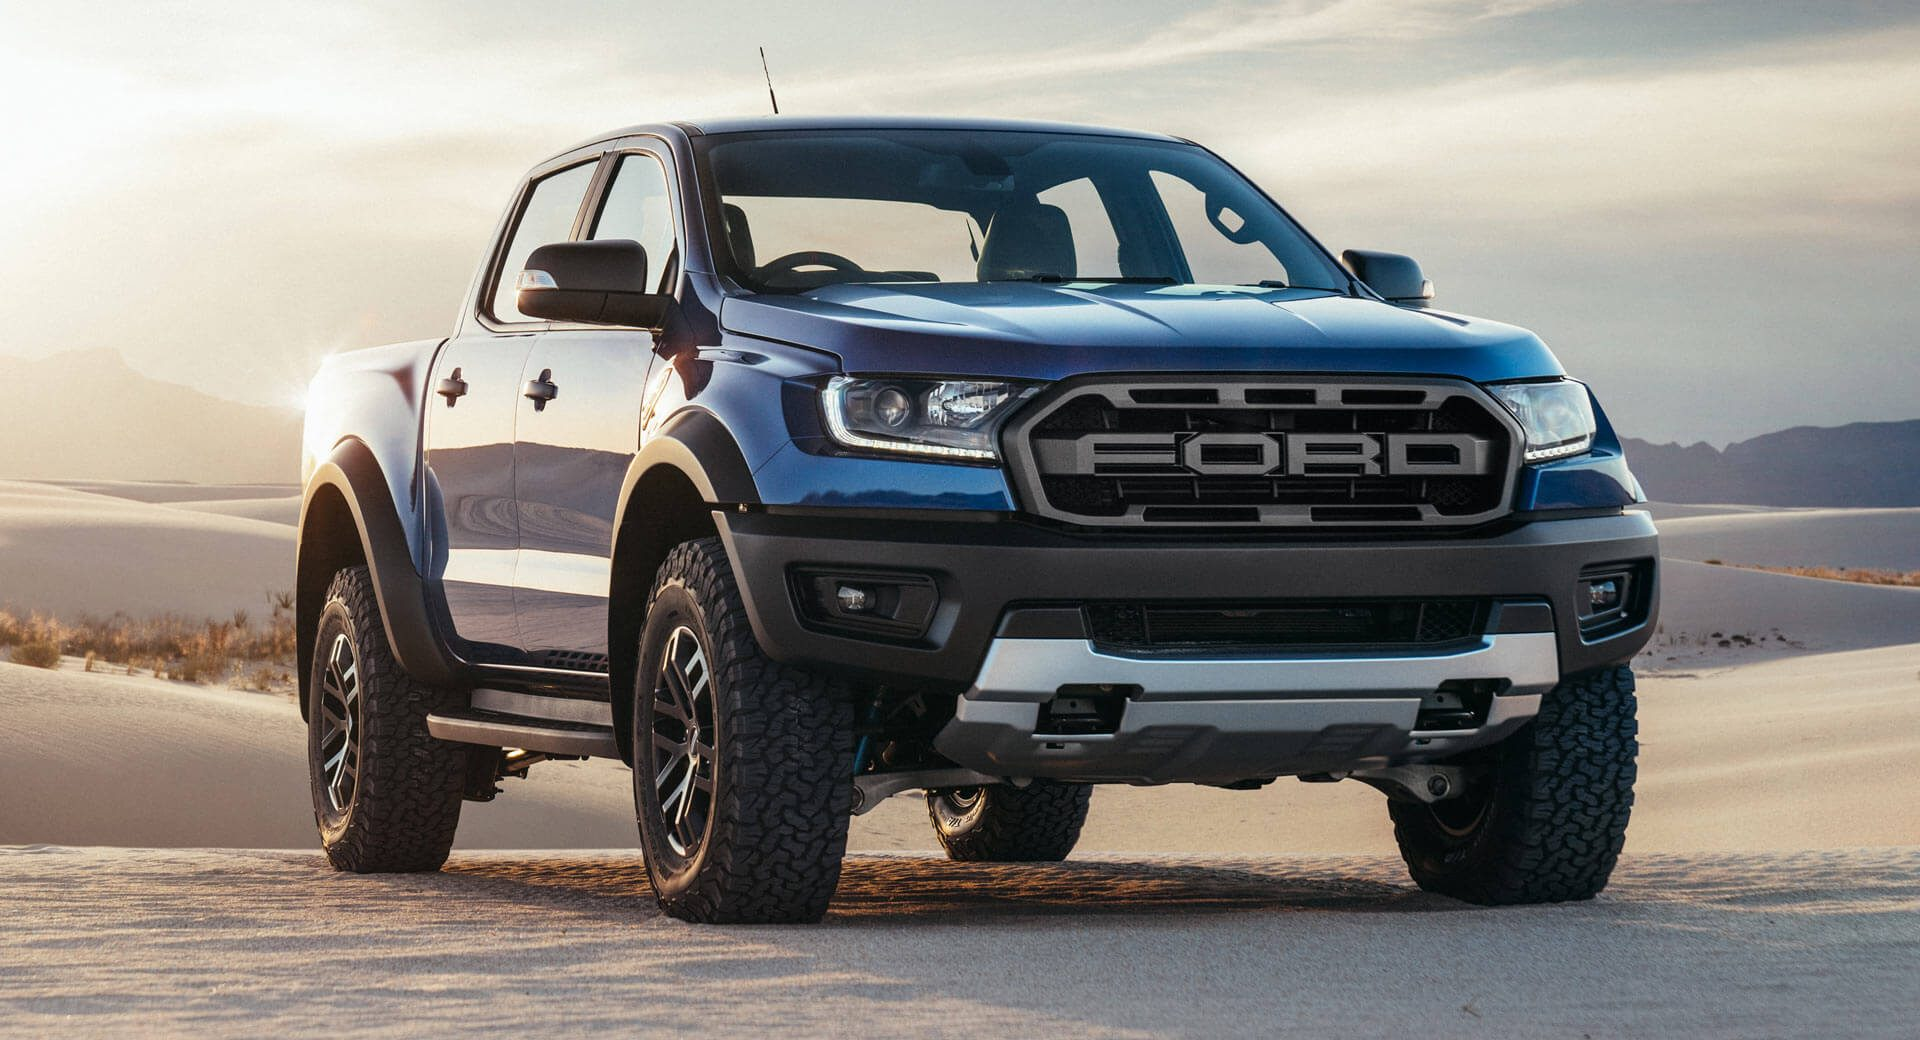 2019 ford ranger raptor revealed with 210hp turbodiesel power carscoops. Black Bedroom Furniture Sets. Home Design Ideas